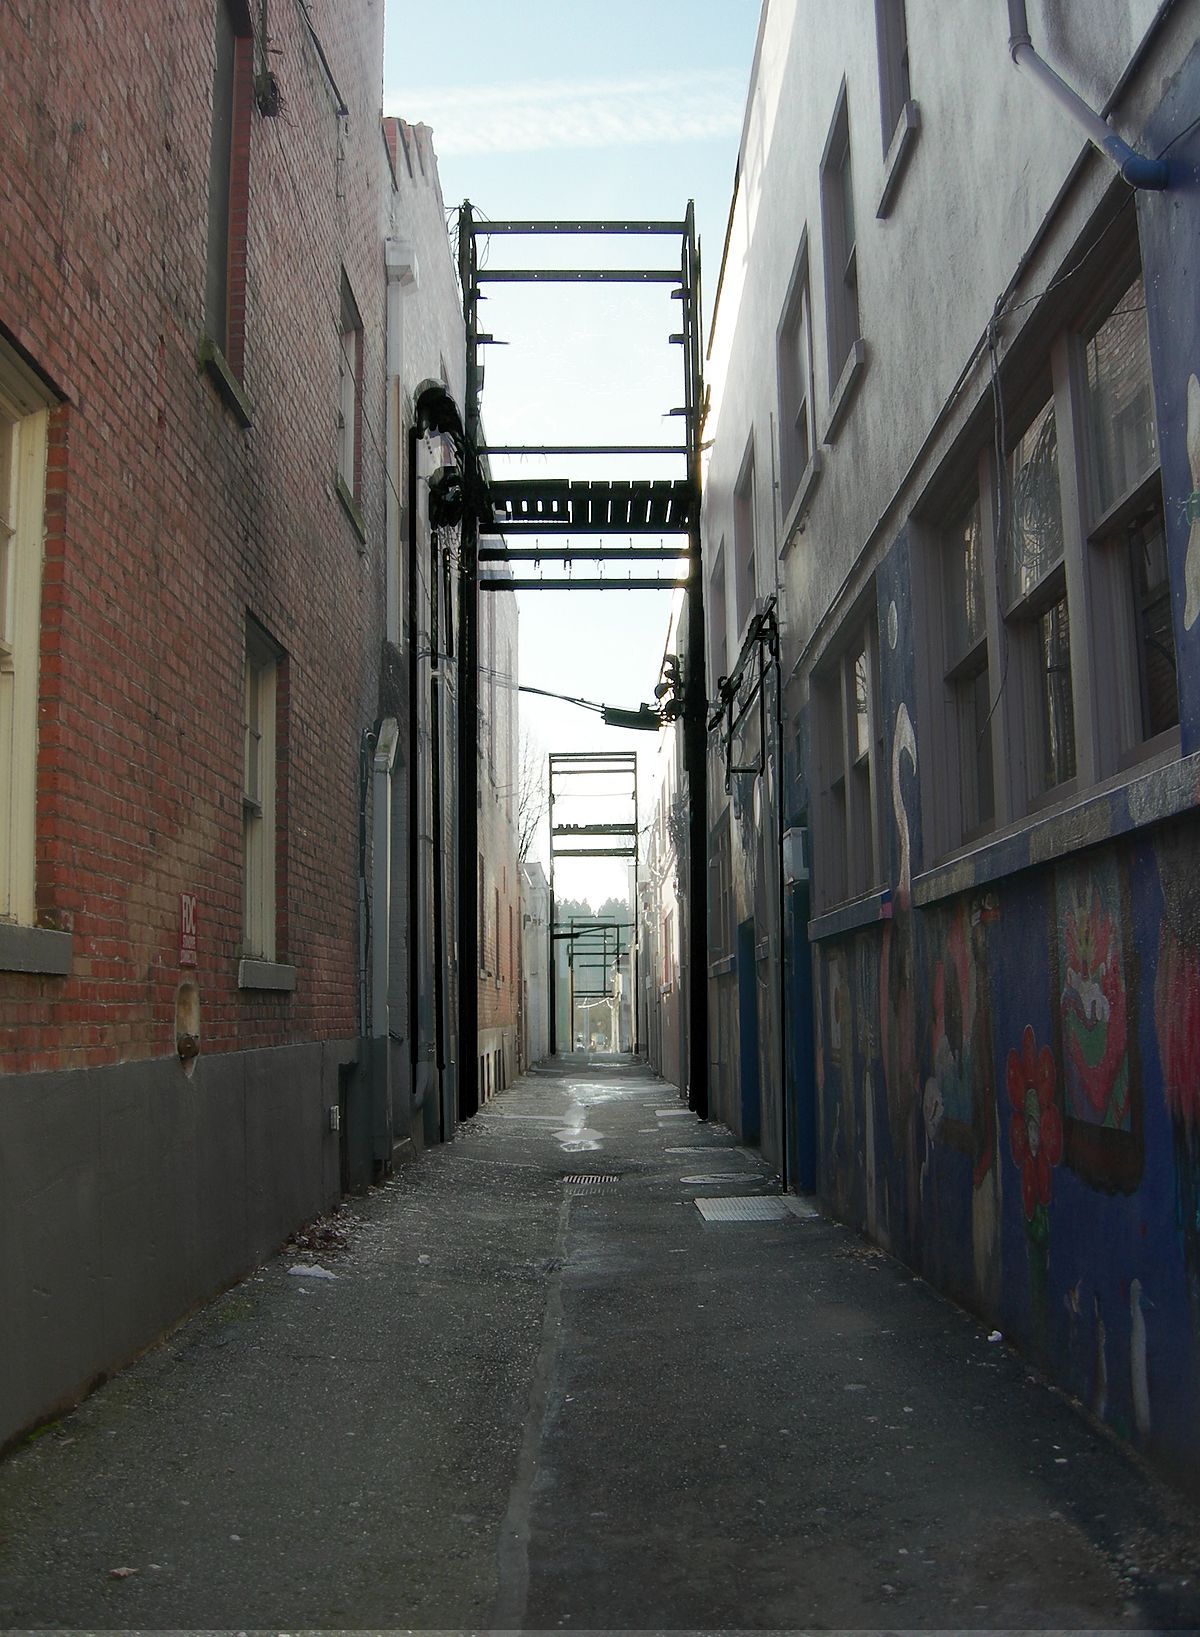 alley - Simple English Wiktionary